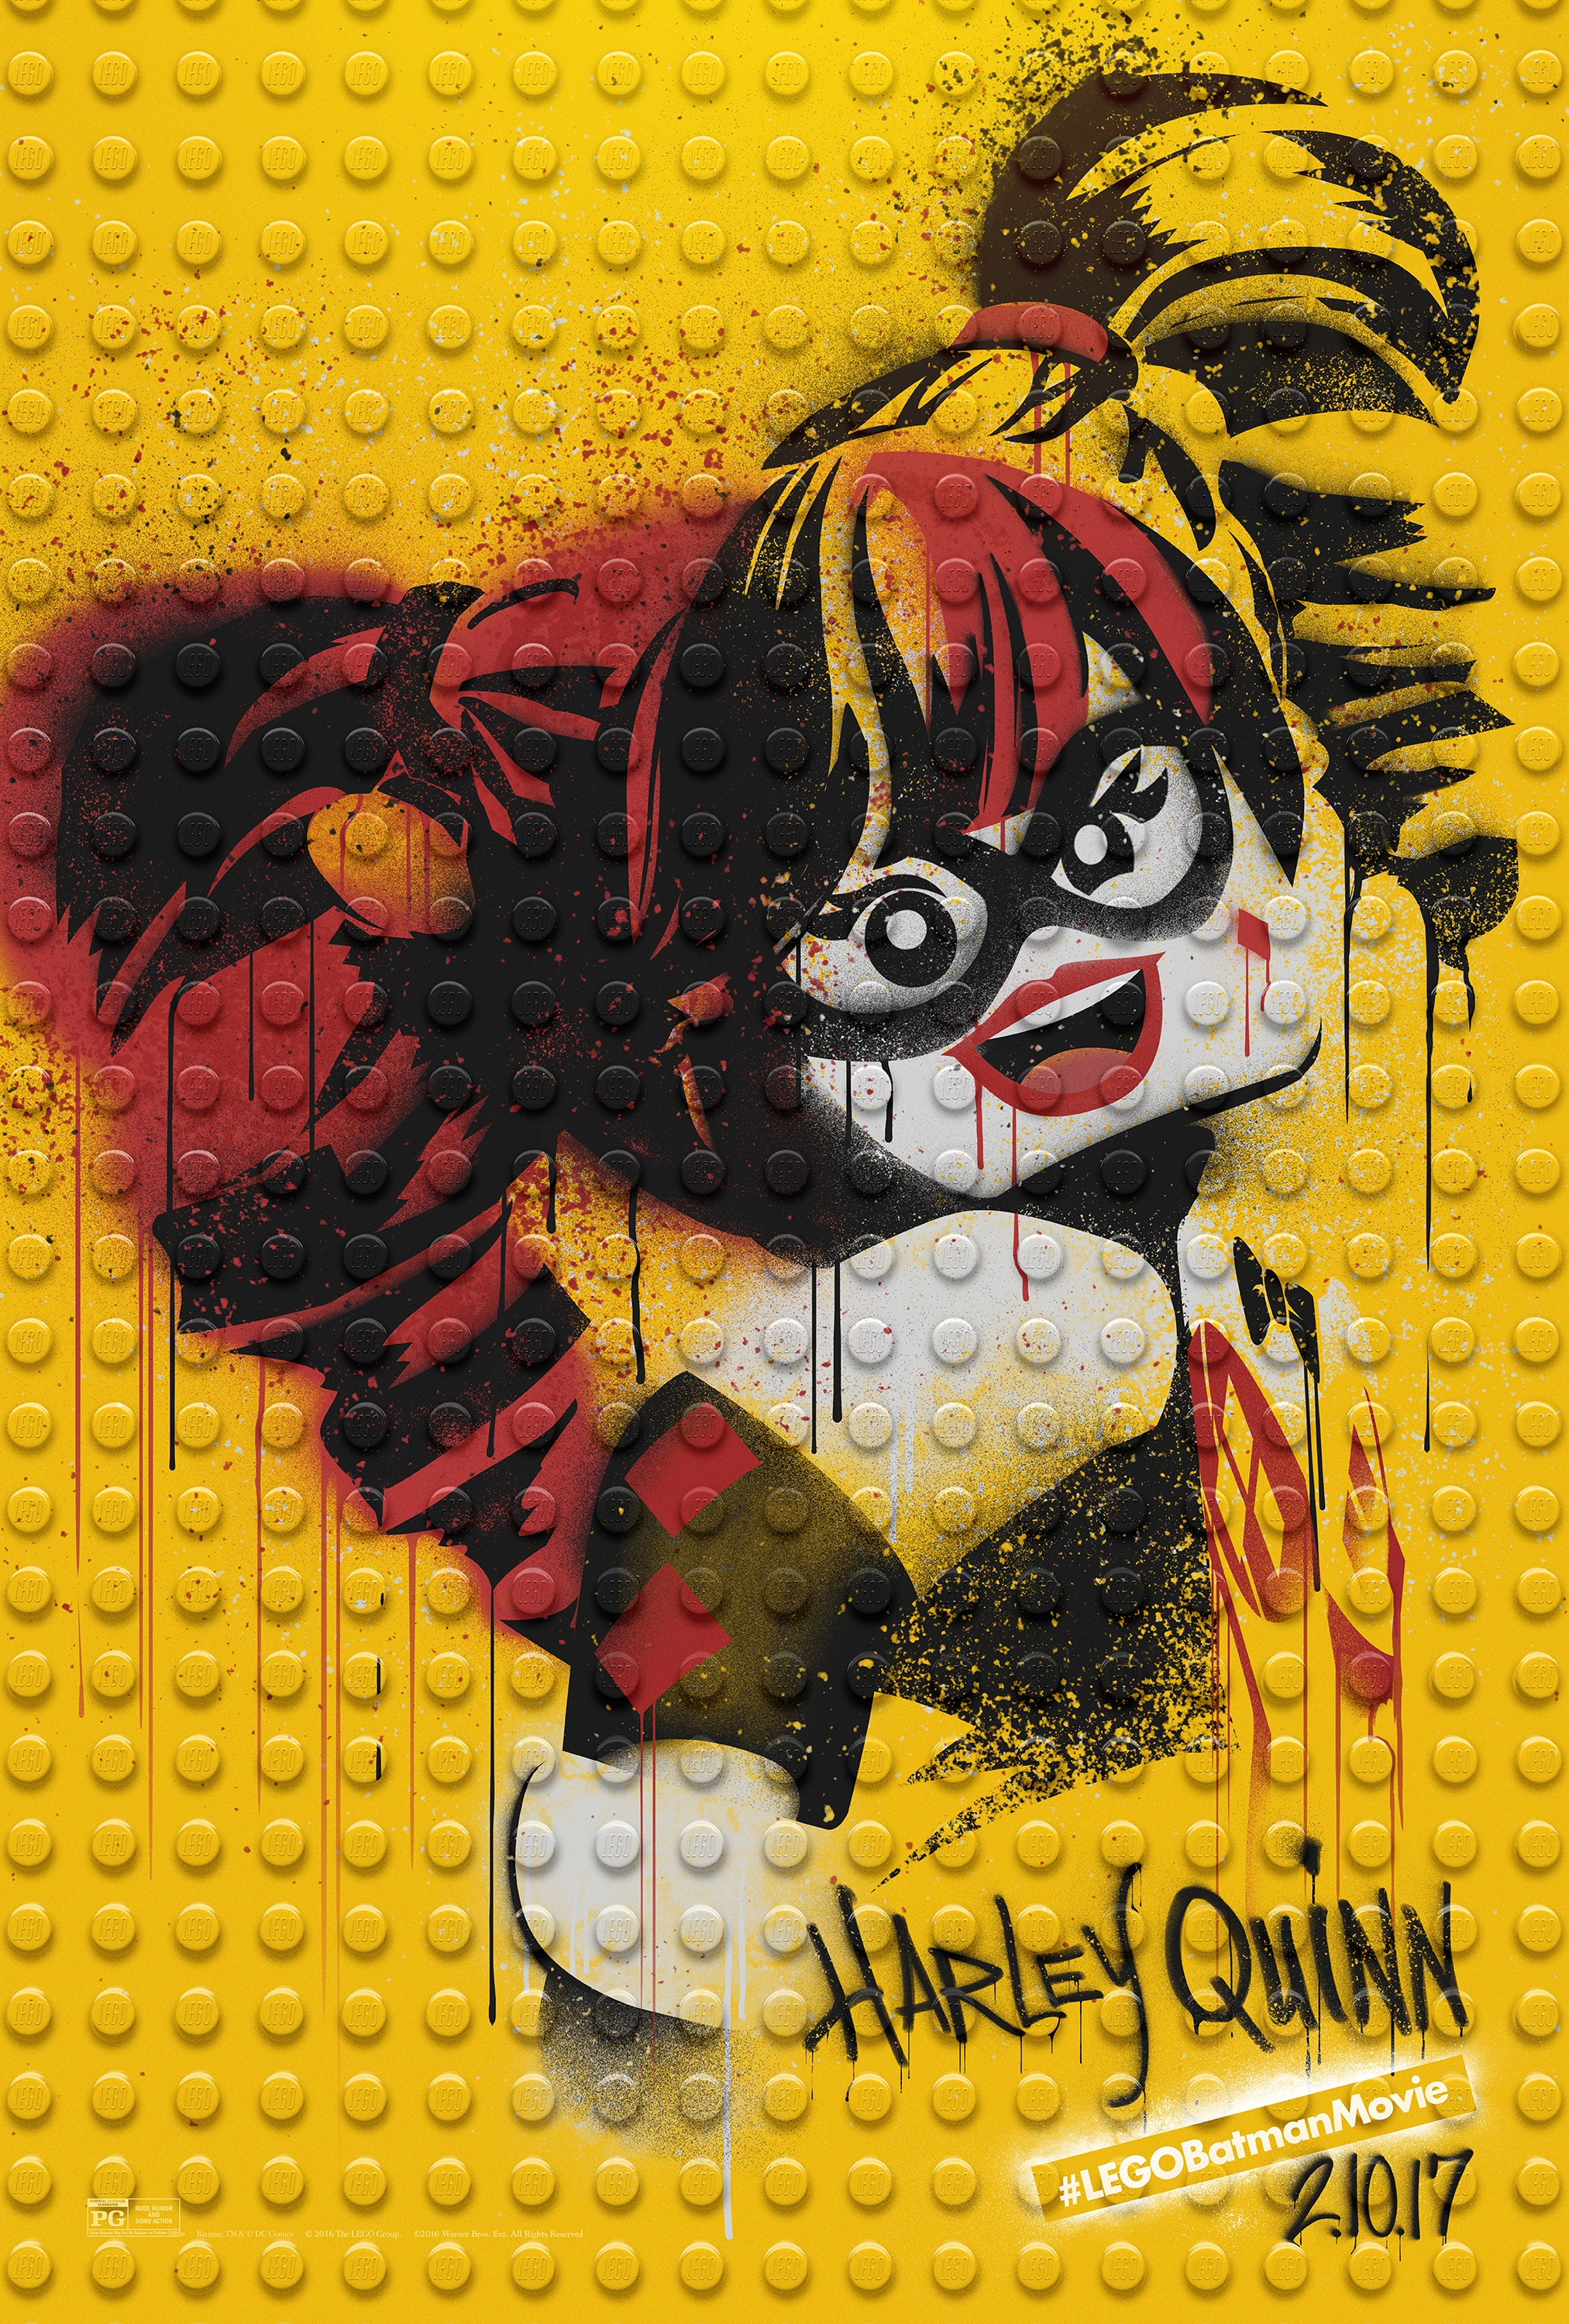 Thumbnail for The LEGO Batman Movie - Graffiti Wild Postings | Harley Quinn